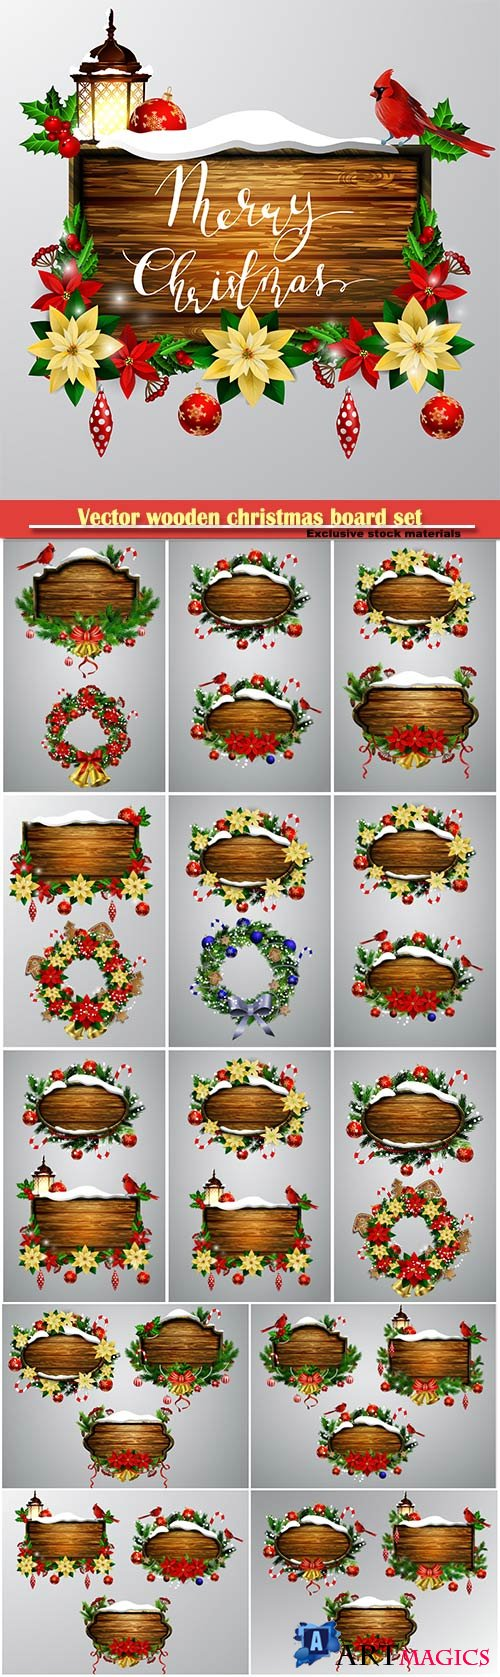 Vector wooden christmas board set with christmas tree and decorations